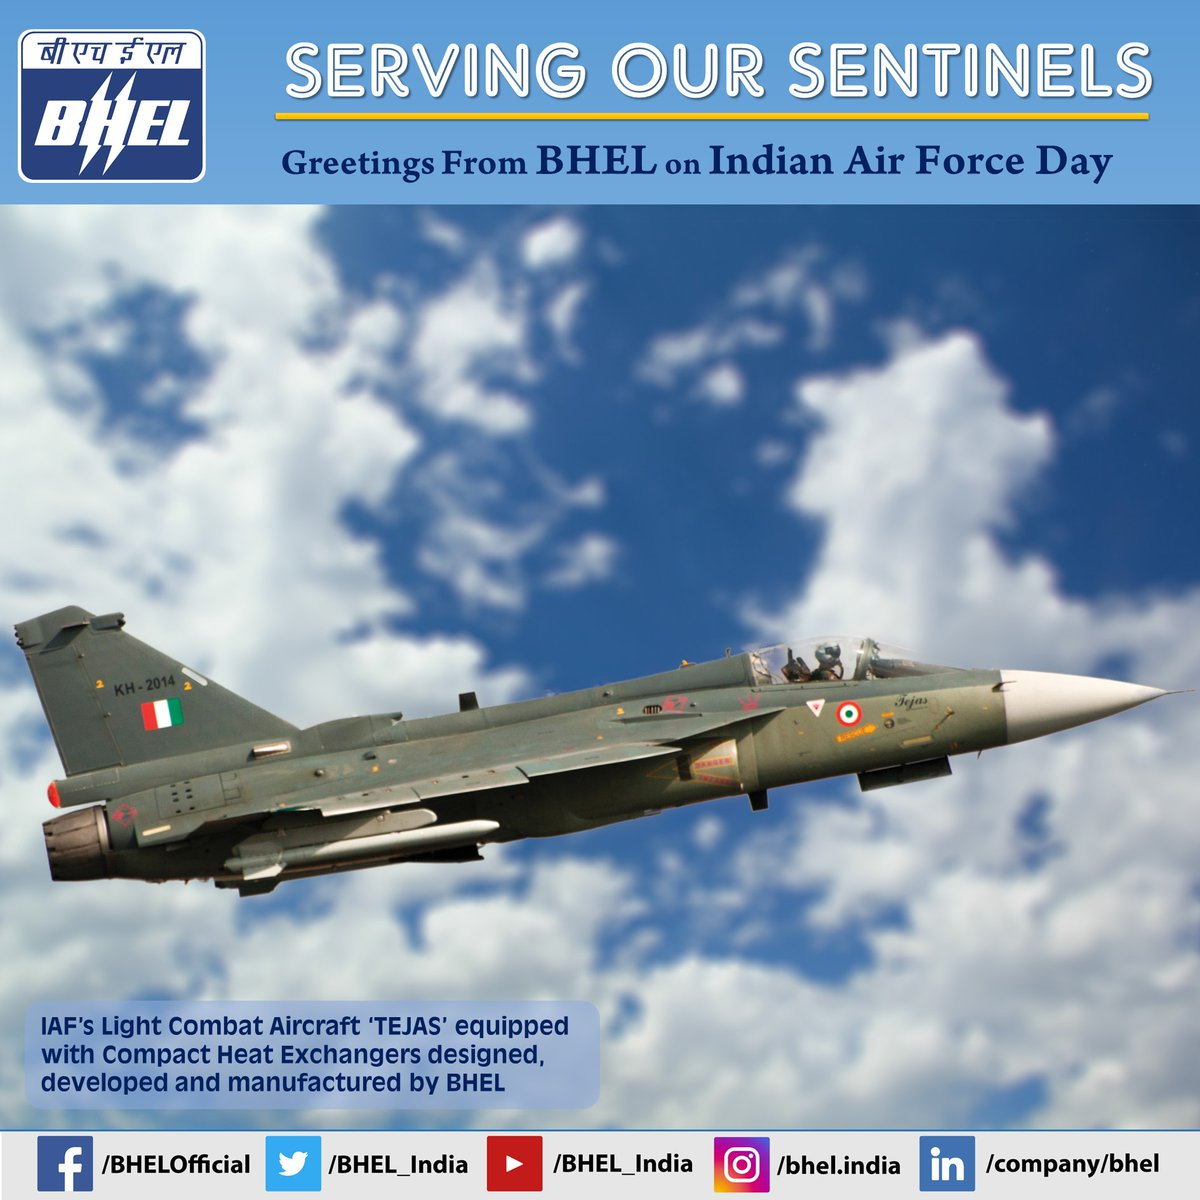 Greetings from #BHEL on ##IndianAirforceDay  #IAFDay2020 @heindustry @IAF_MCC #IndianAirforceday2020 #AFDay2020 @DefenceMinIndia @PIB_India @rajnathsingh @drajaykumar_ias @adgpi @SpokespersonMoD https://t.co/pU8eOcvgff